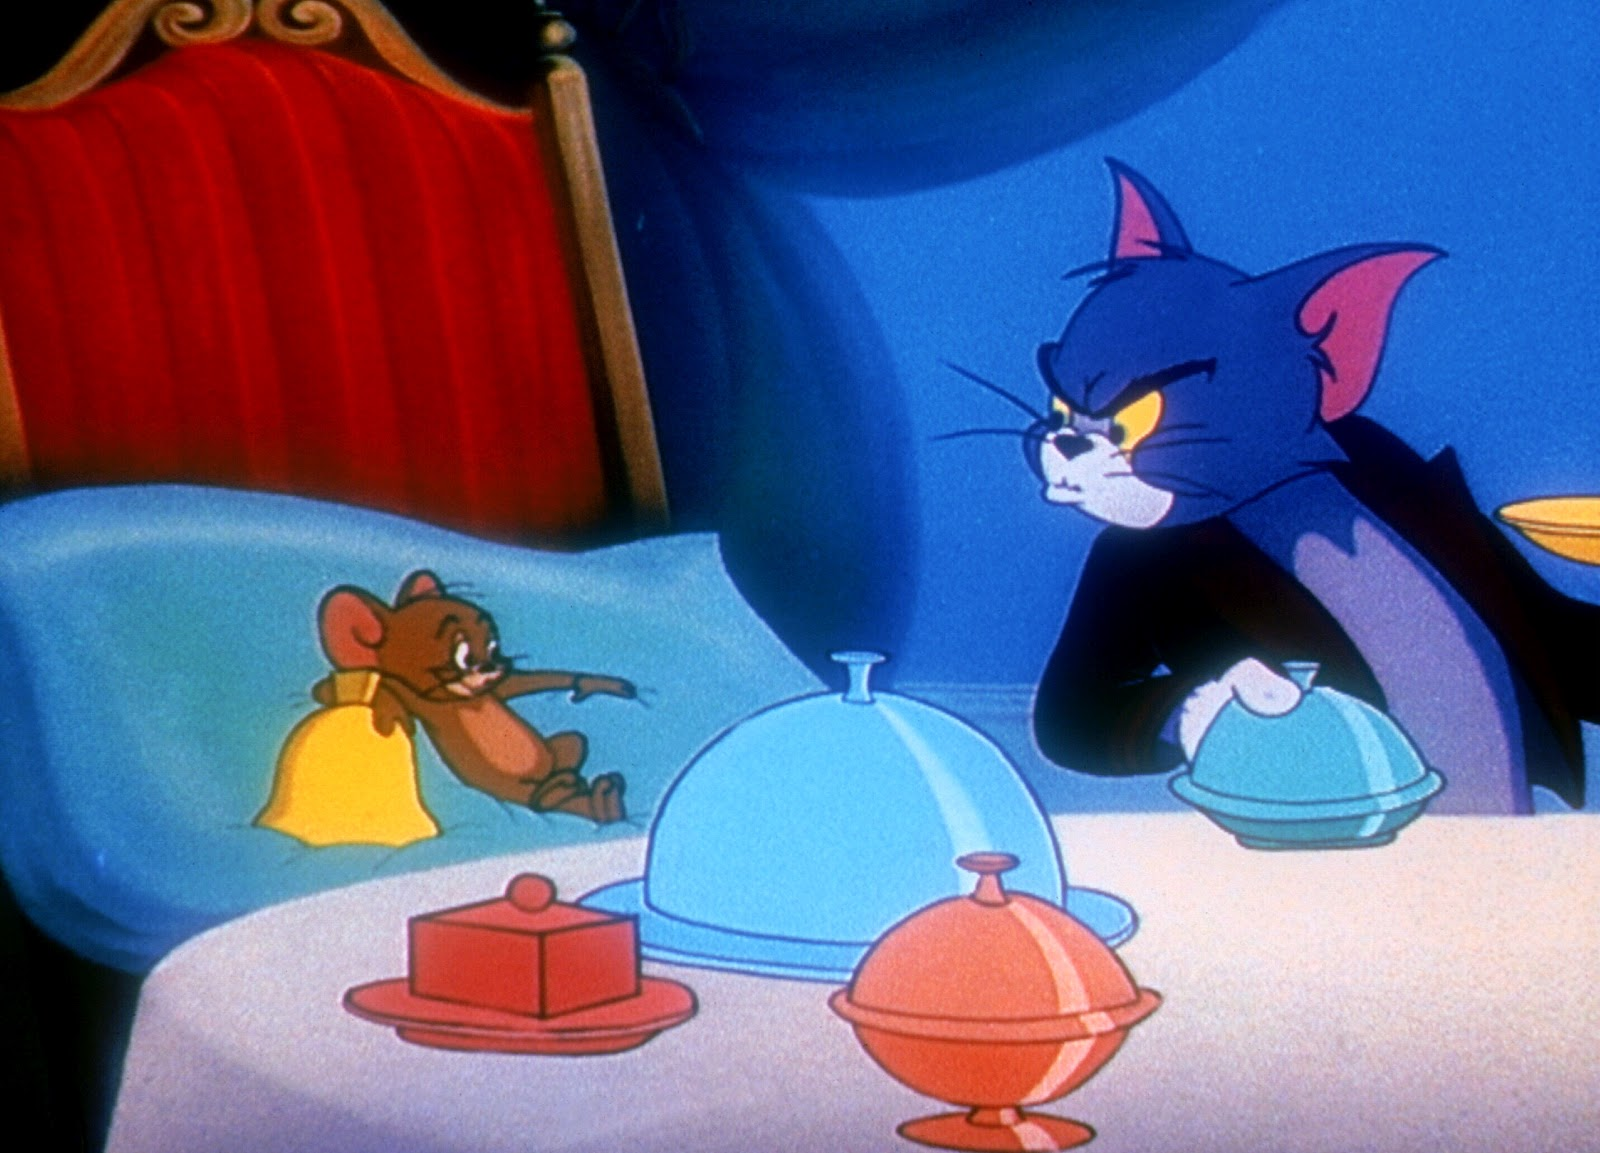 ... , Birds Wallpapers ,Sad Poetry Wallpapers,: Tom and Jerry Wallpapers